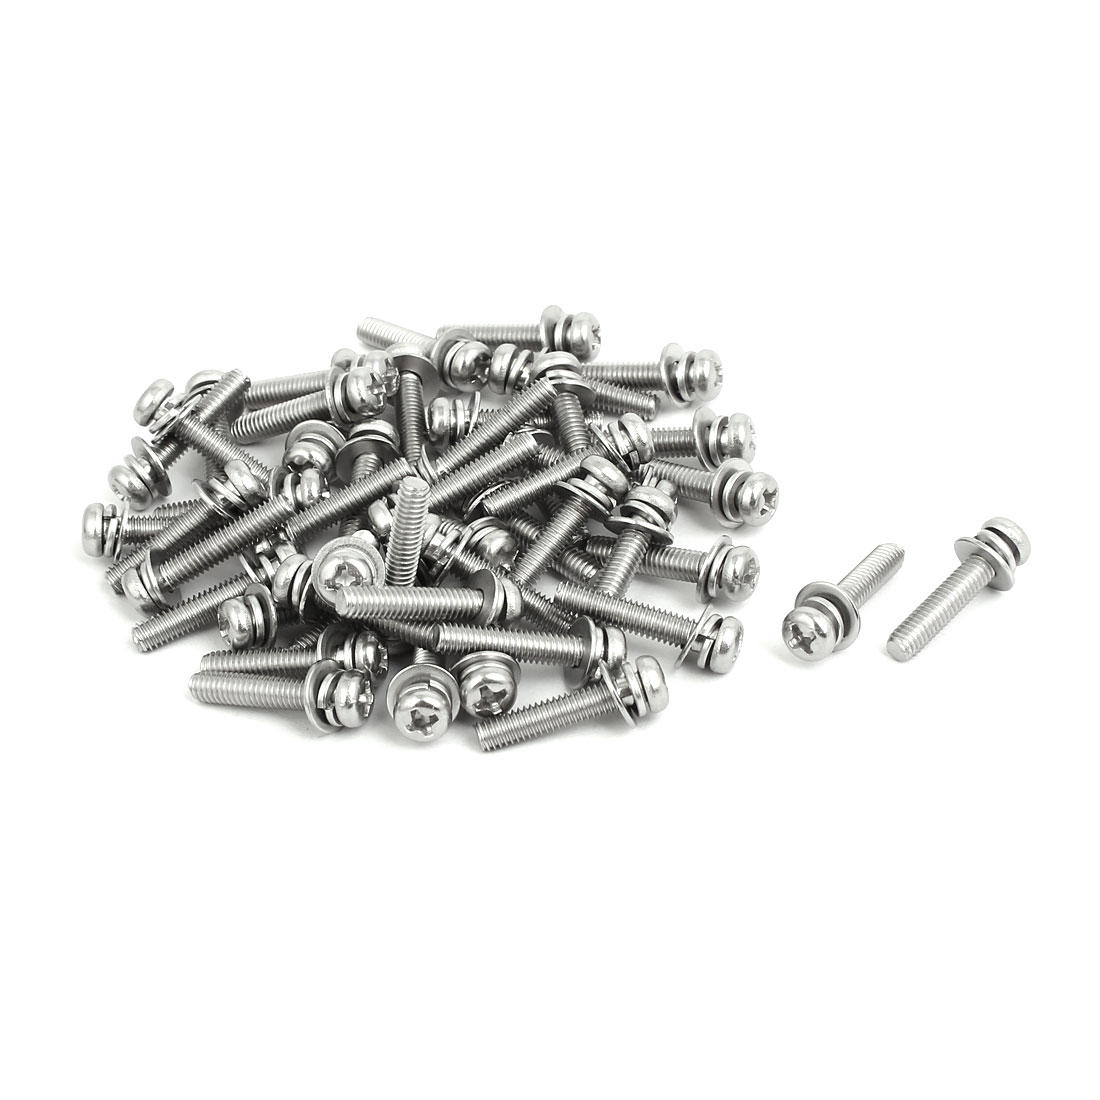 M4x20mm 304 Stainless Steel Phillips Pan Head Bolt Screw w Washer 50 Sets